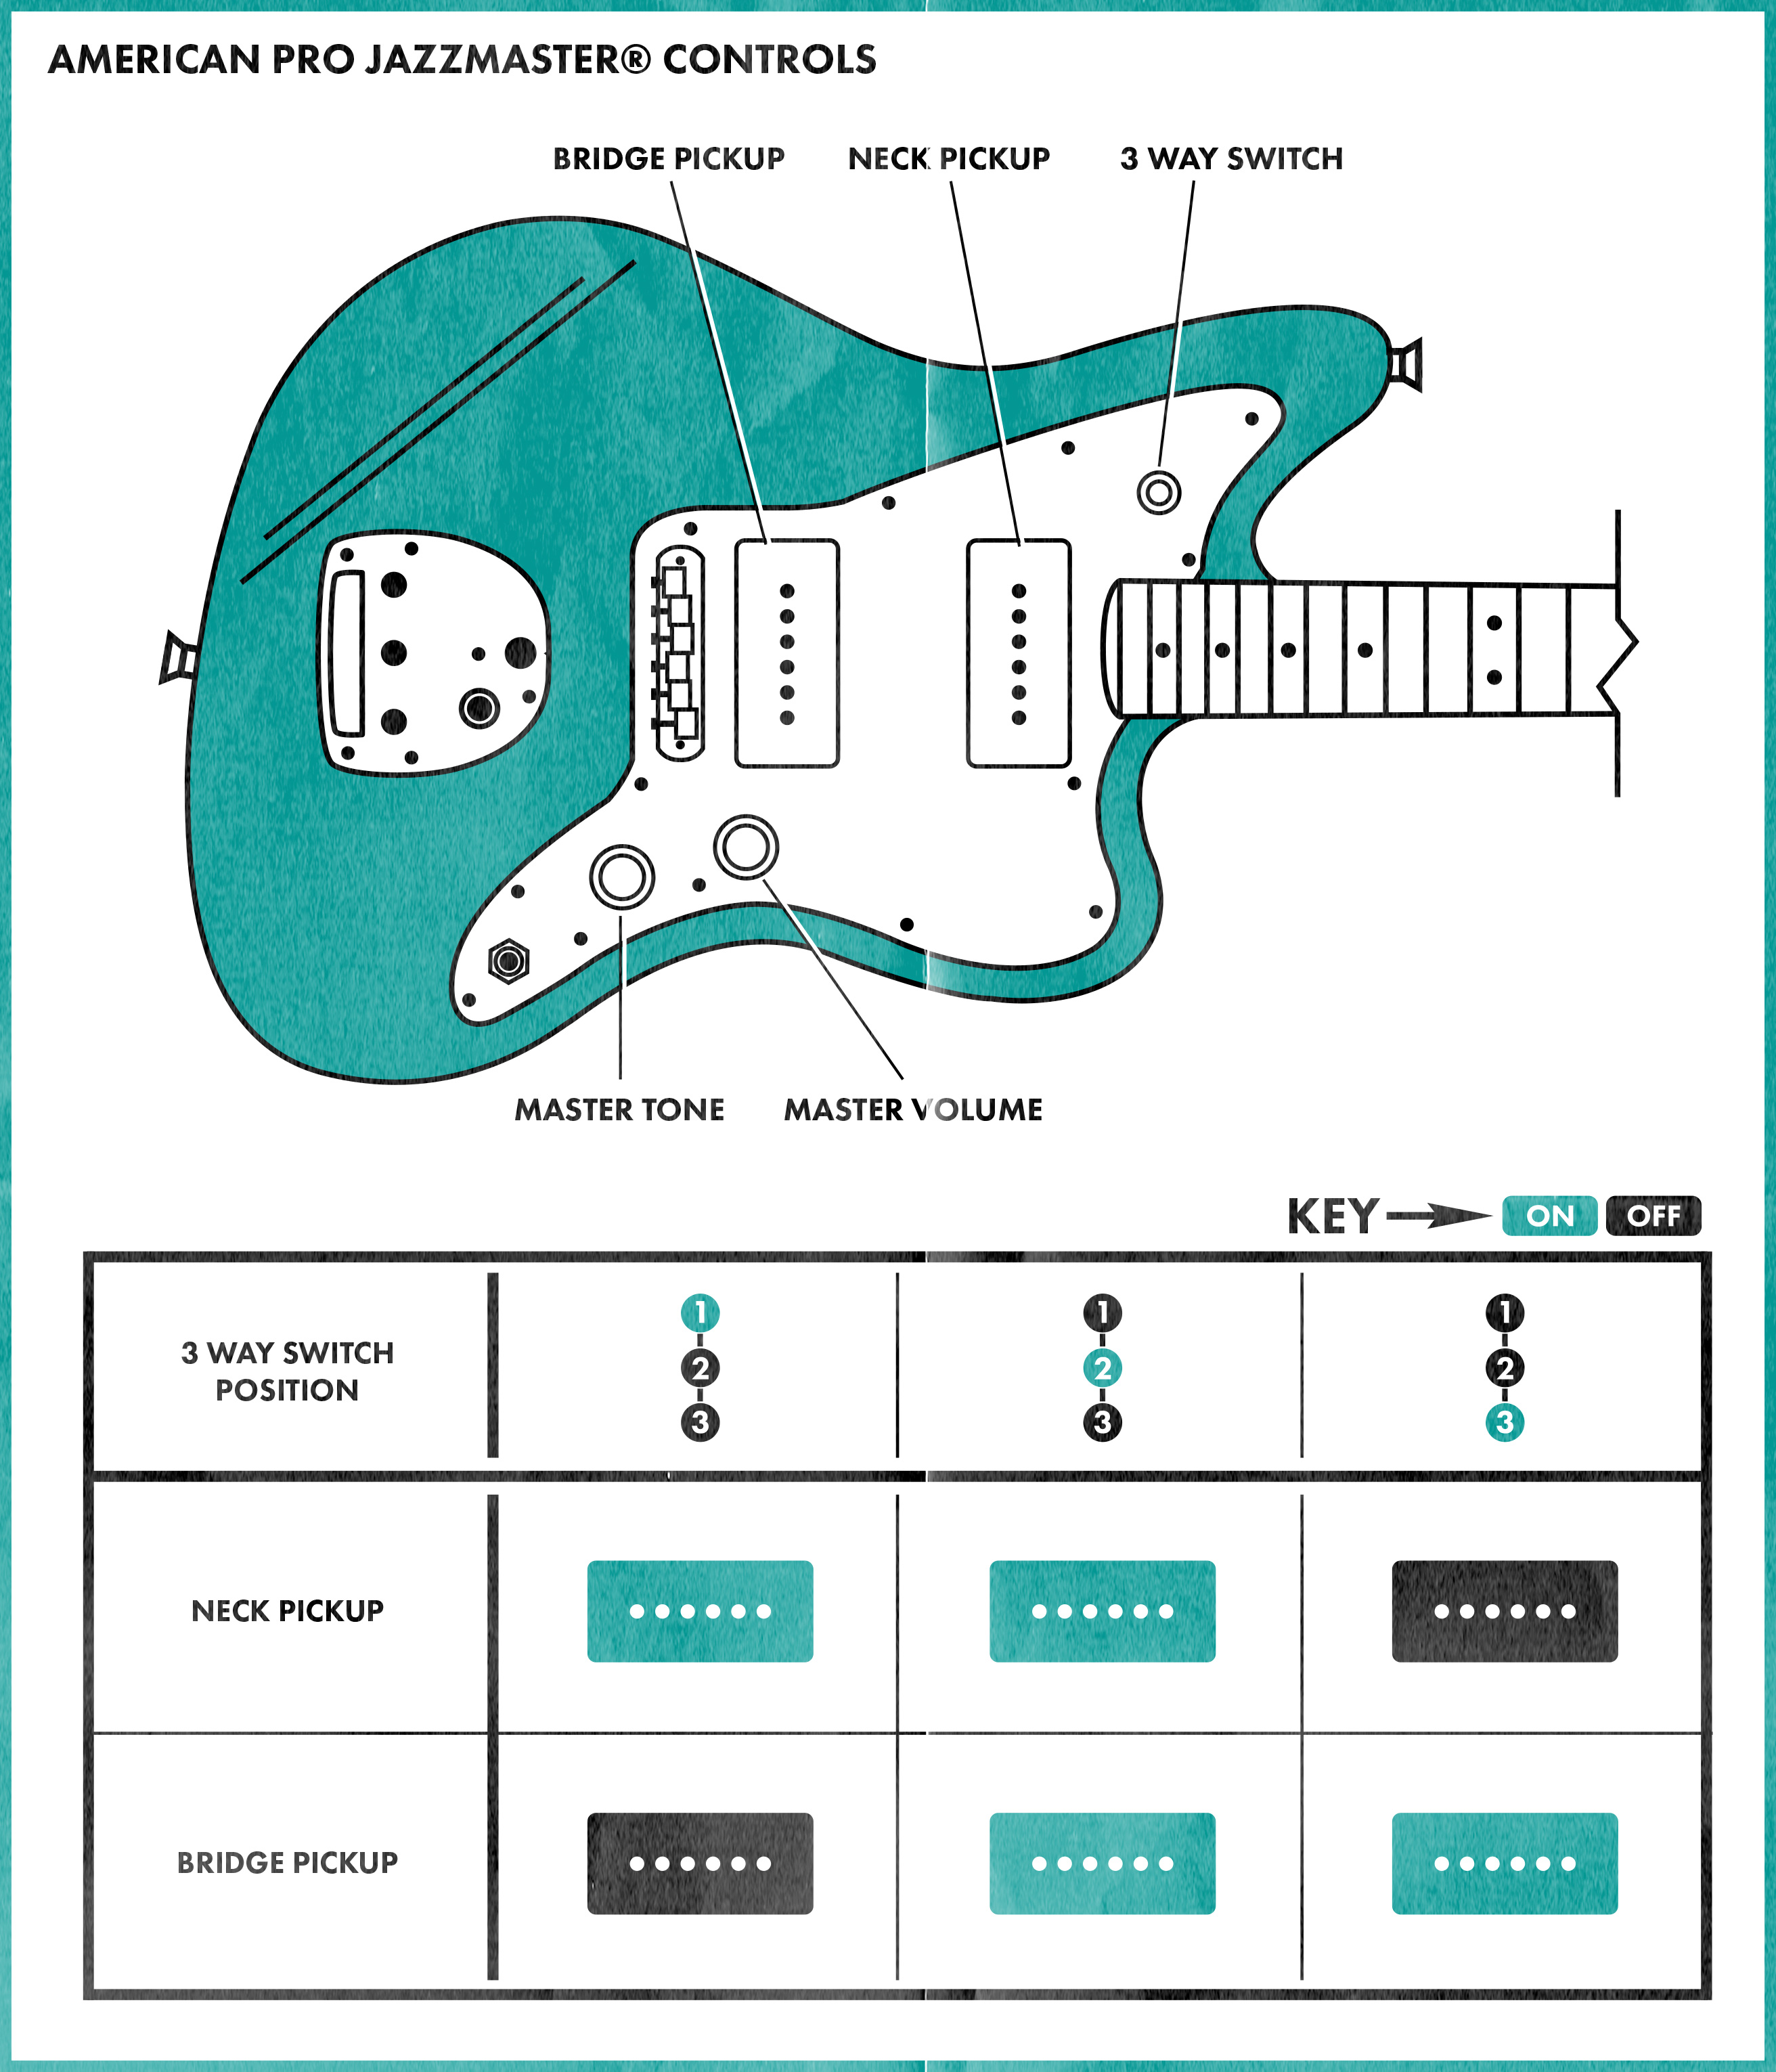 16349 jazzmaster diagram1 v2?resize\\\\\\\\\\\\\\\=665%2C776\\\\\\\\\\\\\\\&ssl\\\\\\\\\\\\\\\=1 jaguar xk120 wiring diagram jaguar wiring diagrams fender jaguar wiring diagram at bayanpartner.co